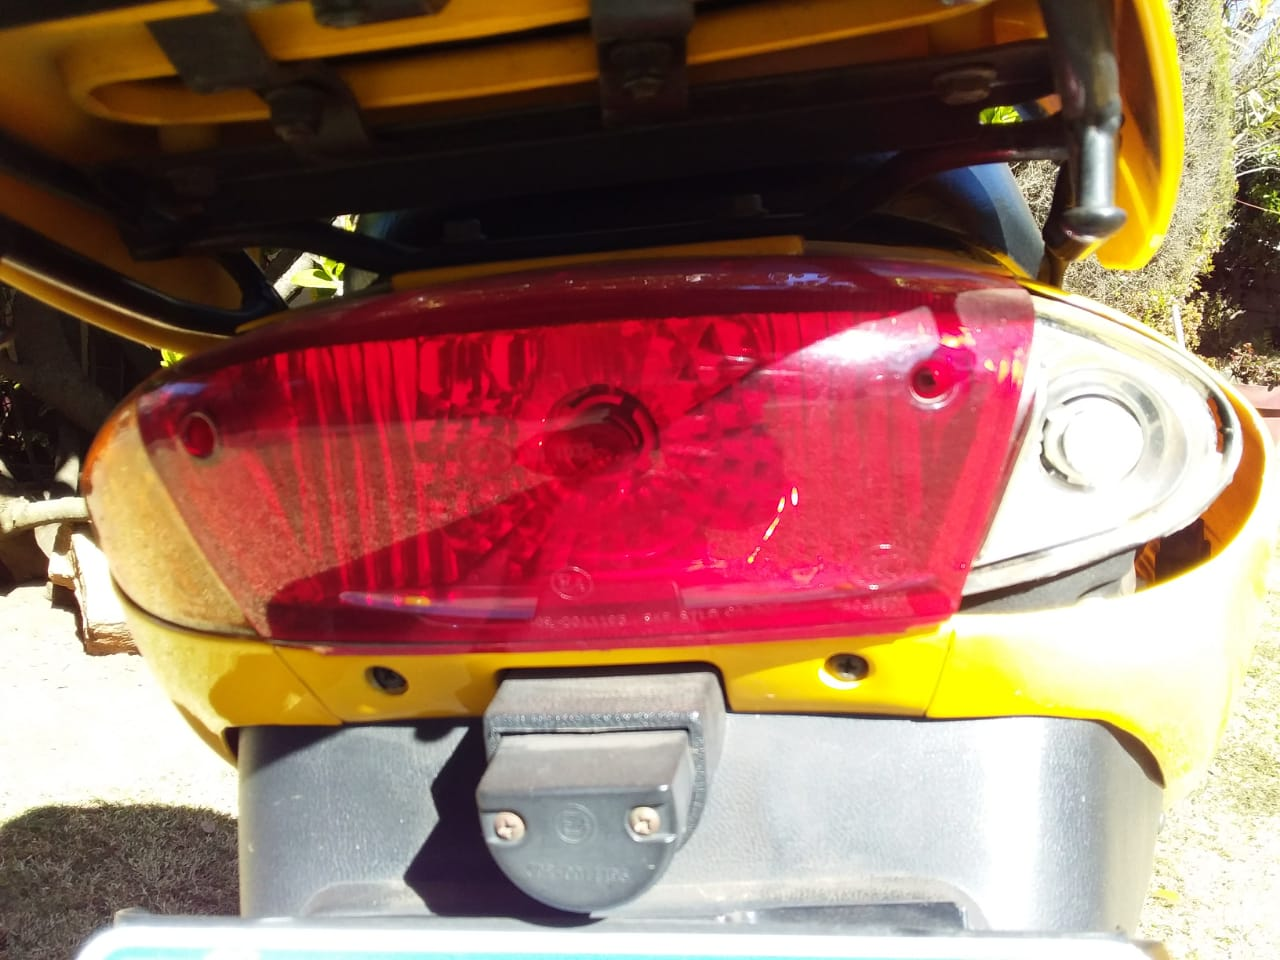 LOOKING FOR RIGHT HAND REAR INDICATOR LENSE FOR VUKA XT150 SCOOTER